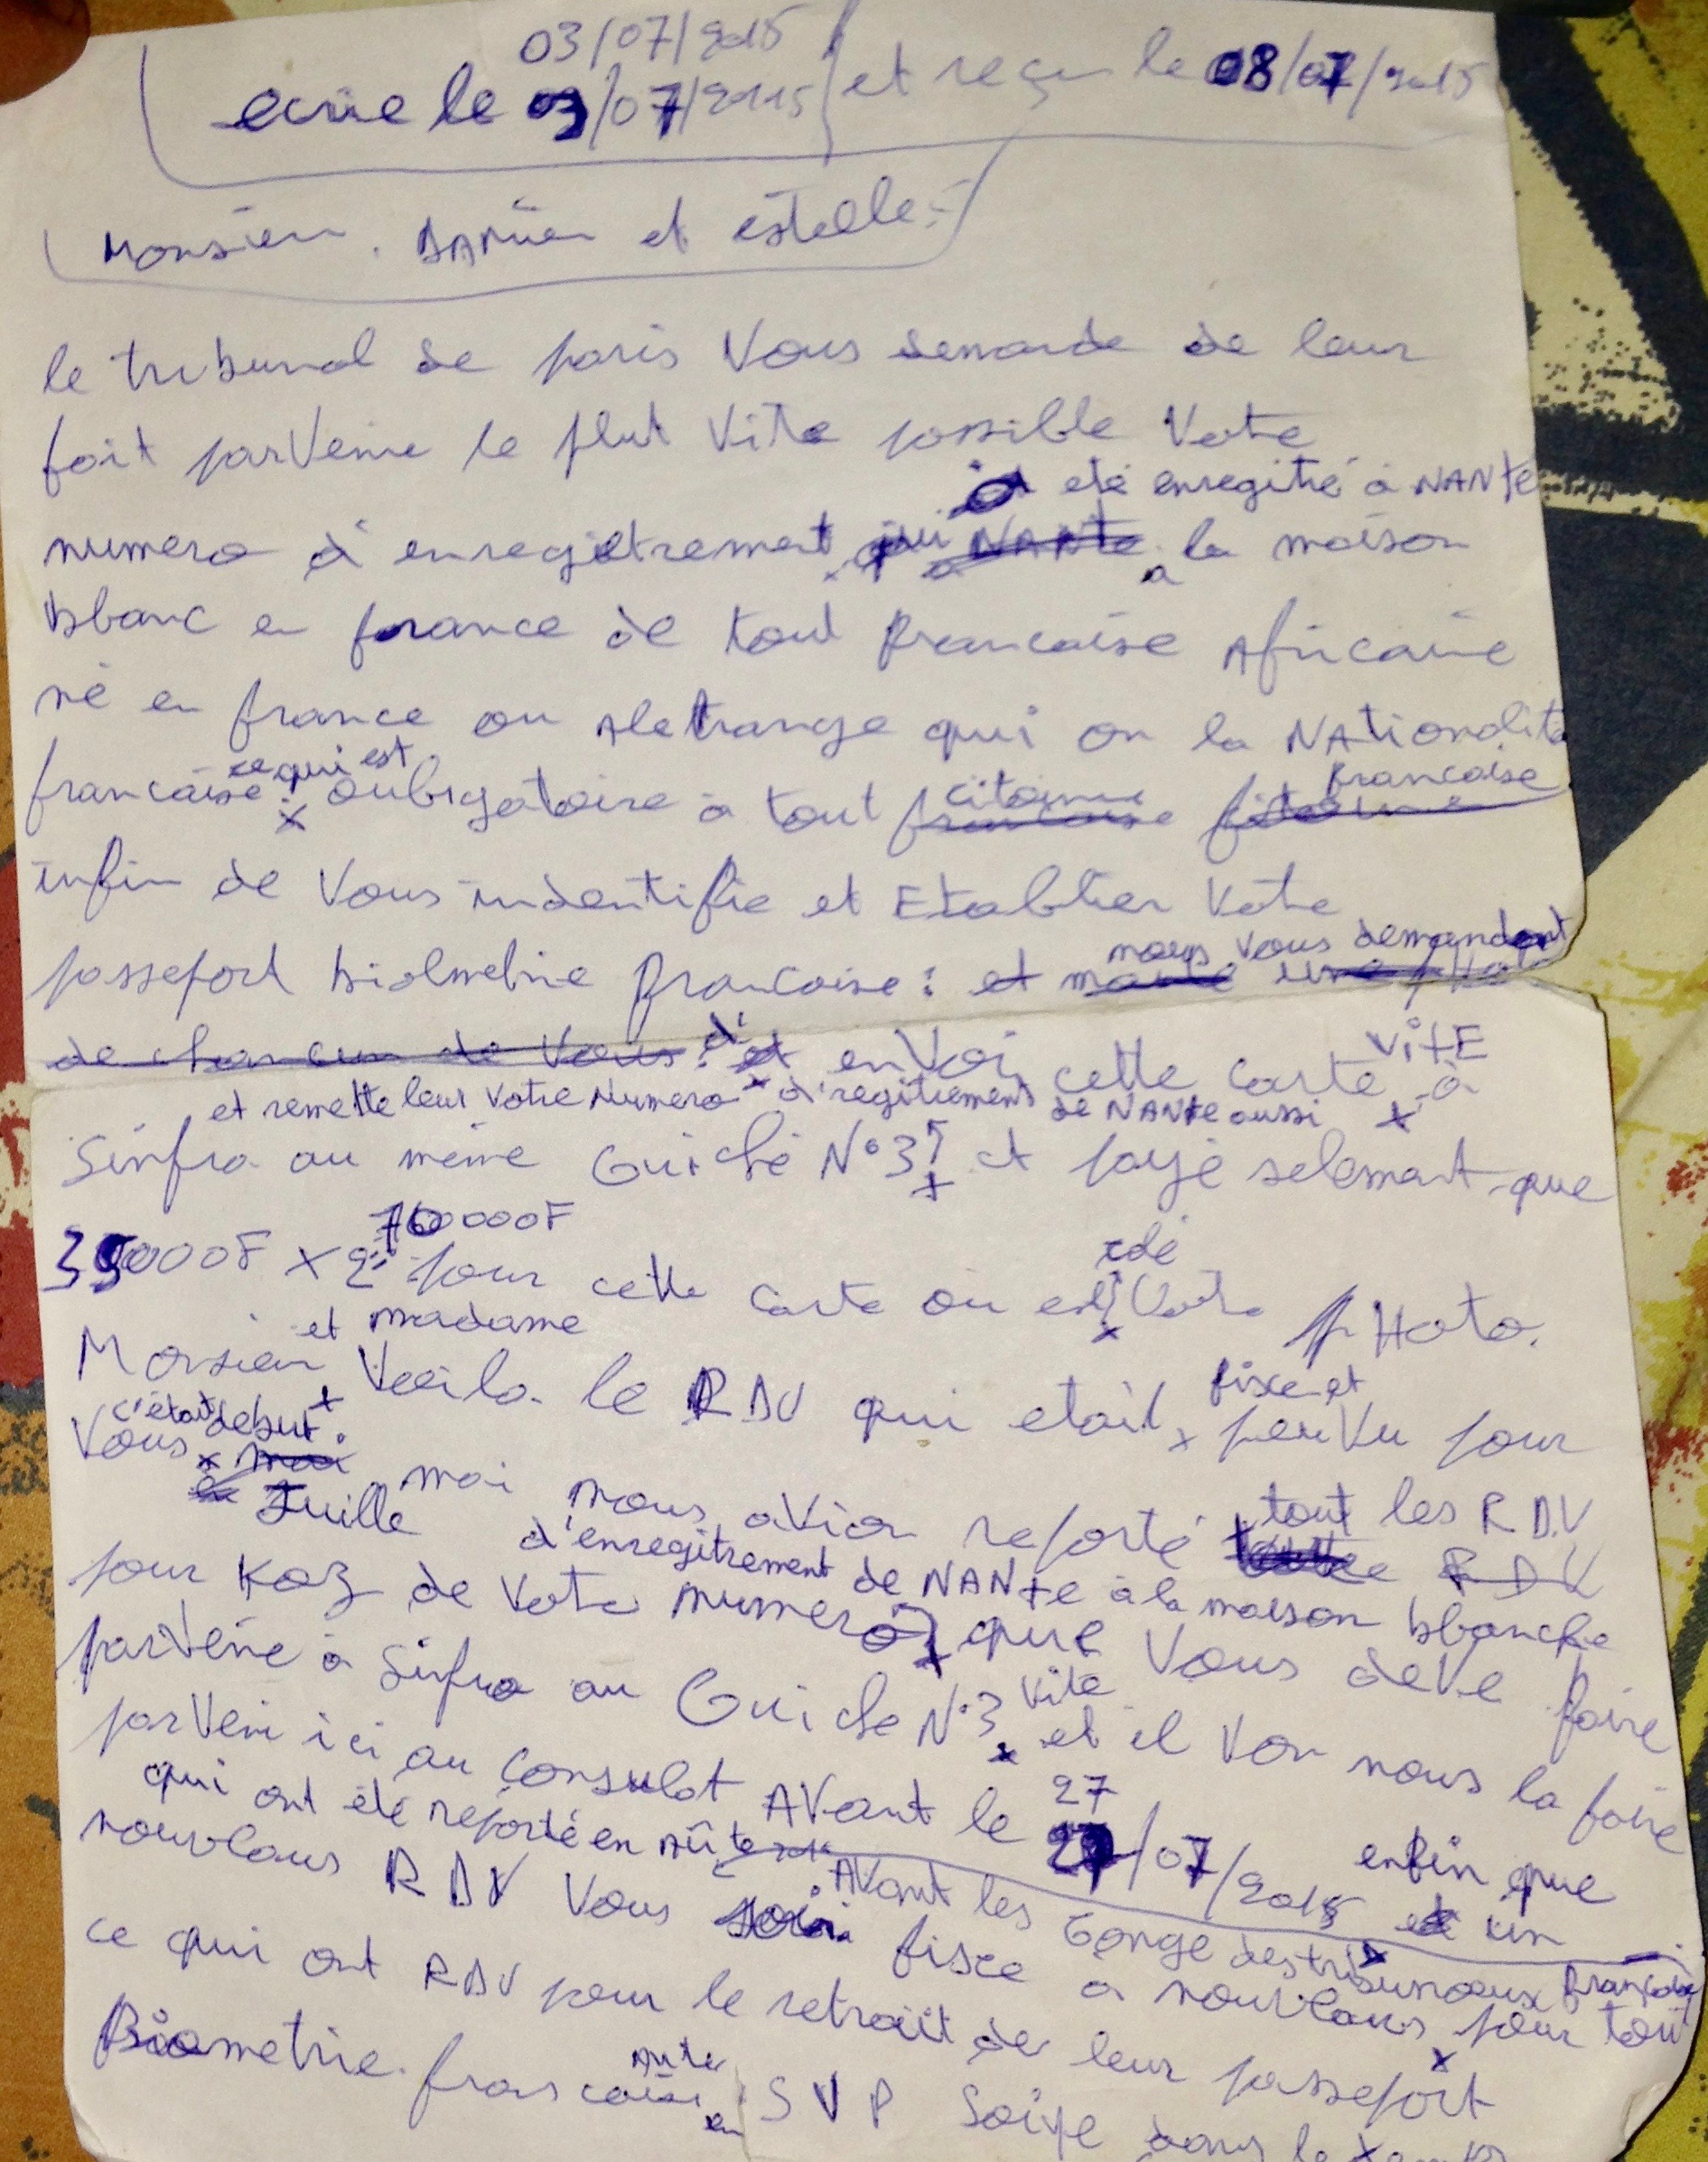 A draft of a counterfeit official letter from the French Consulate. Photo by Sasha Newell.